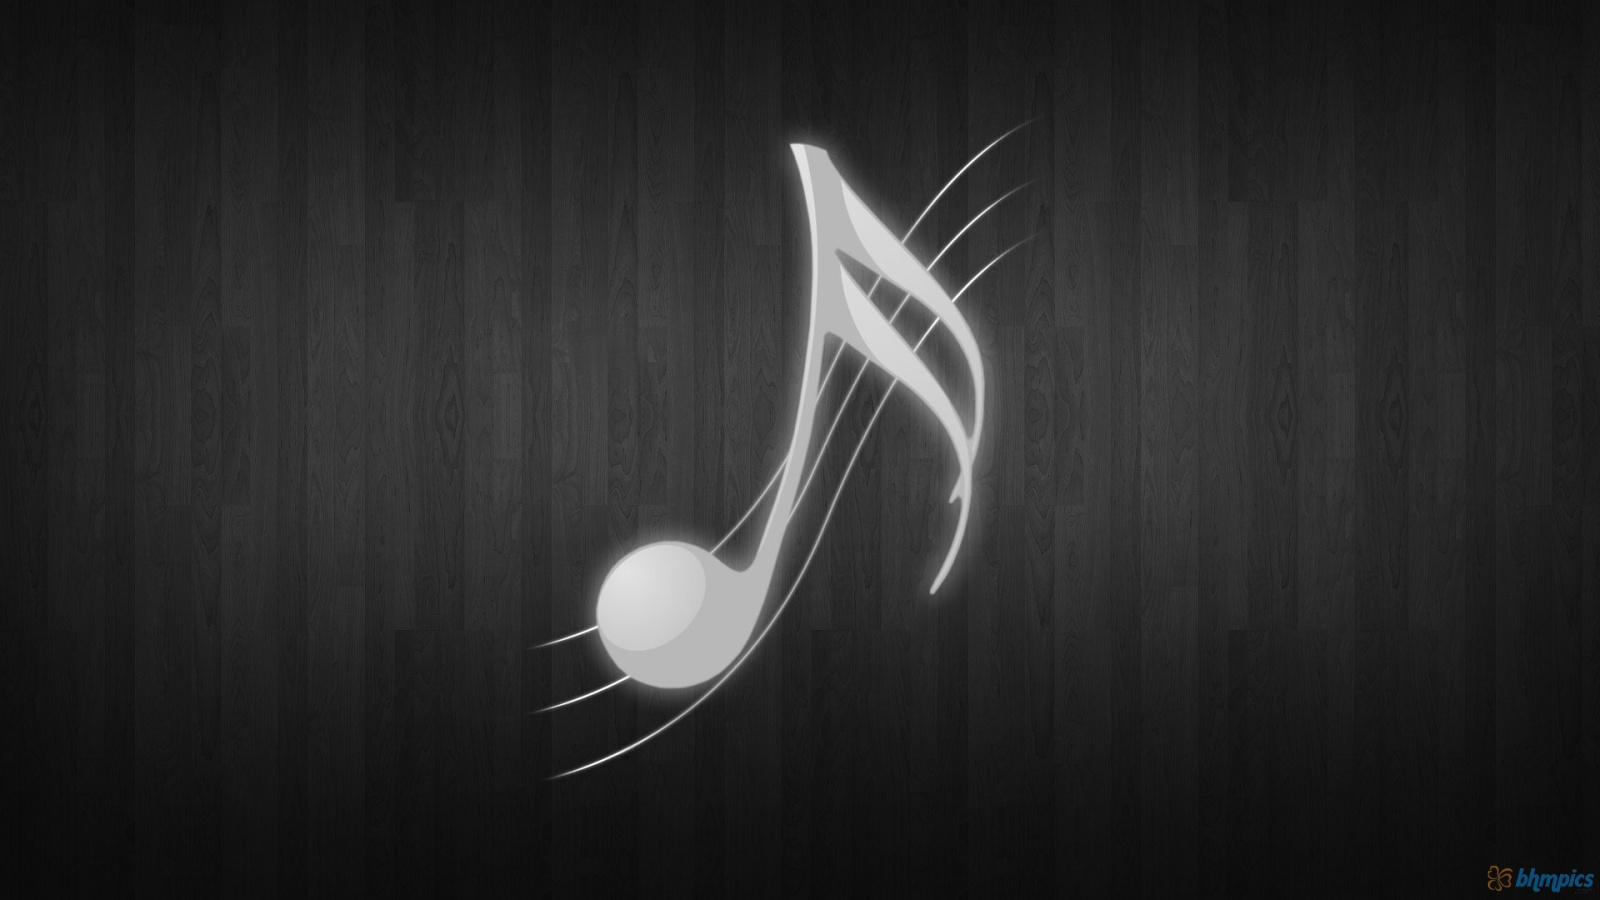 White Music Notes 1600x900 1515 HD Wallpaper Res 1600x900 1600x900